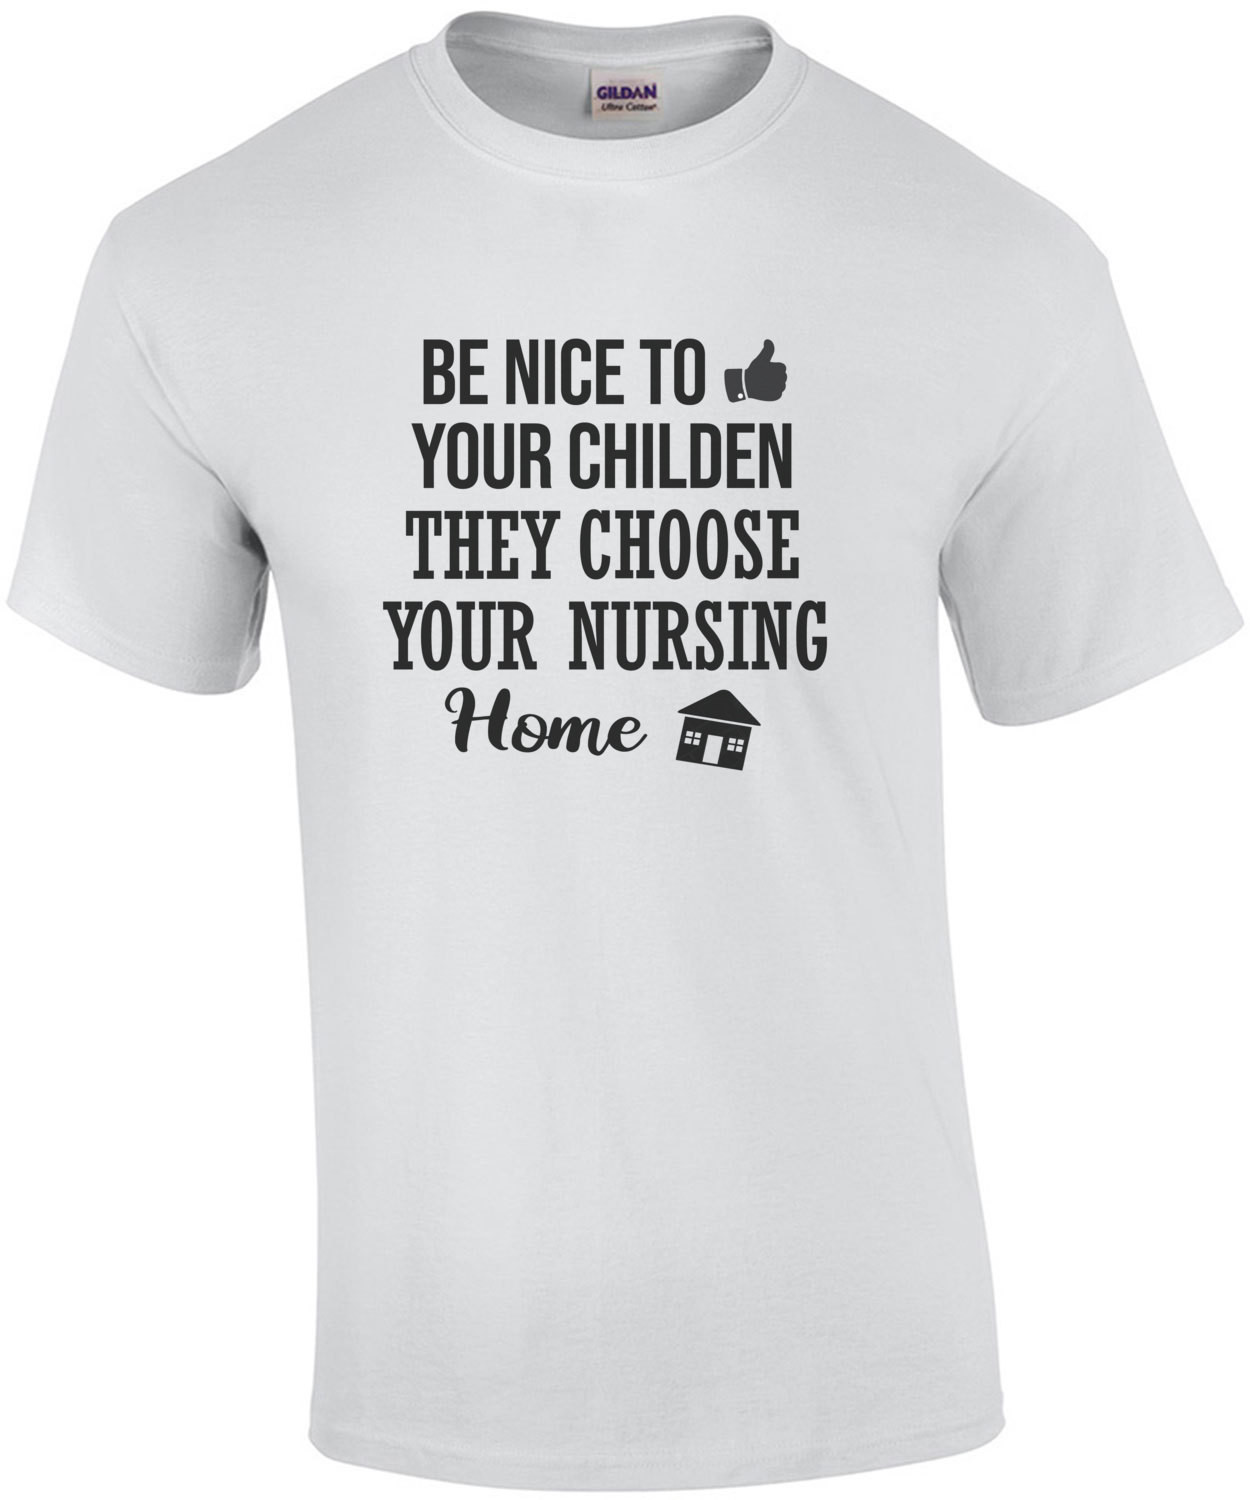 Be nice to your children - they choose your nursing home - funny t-shirt